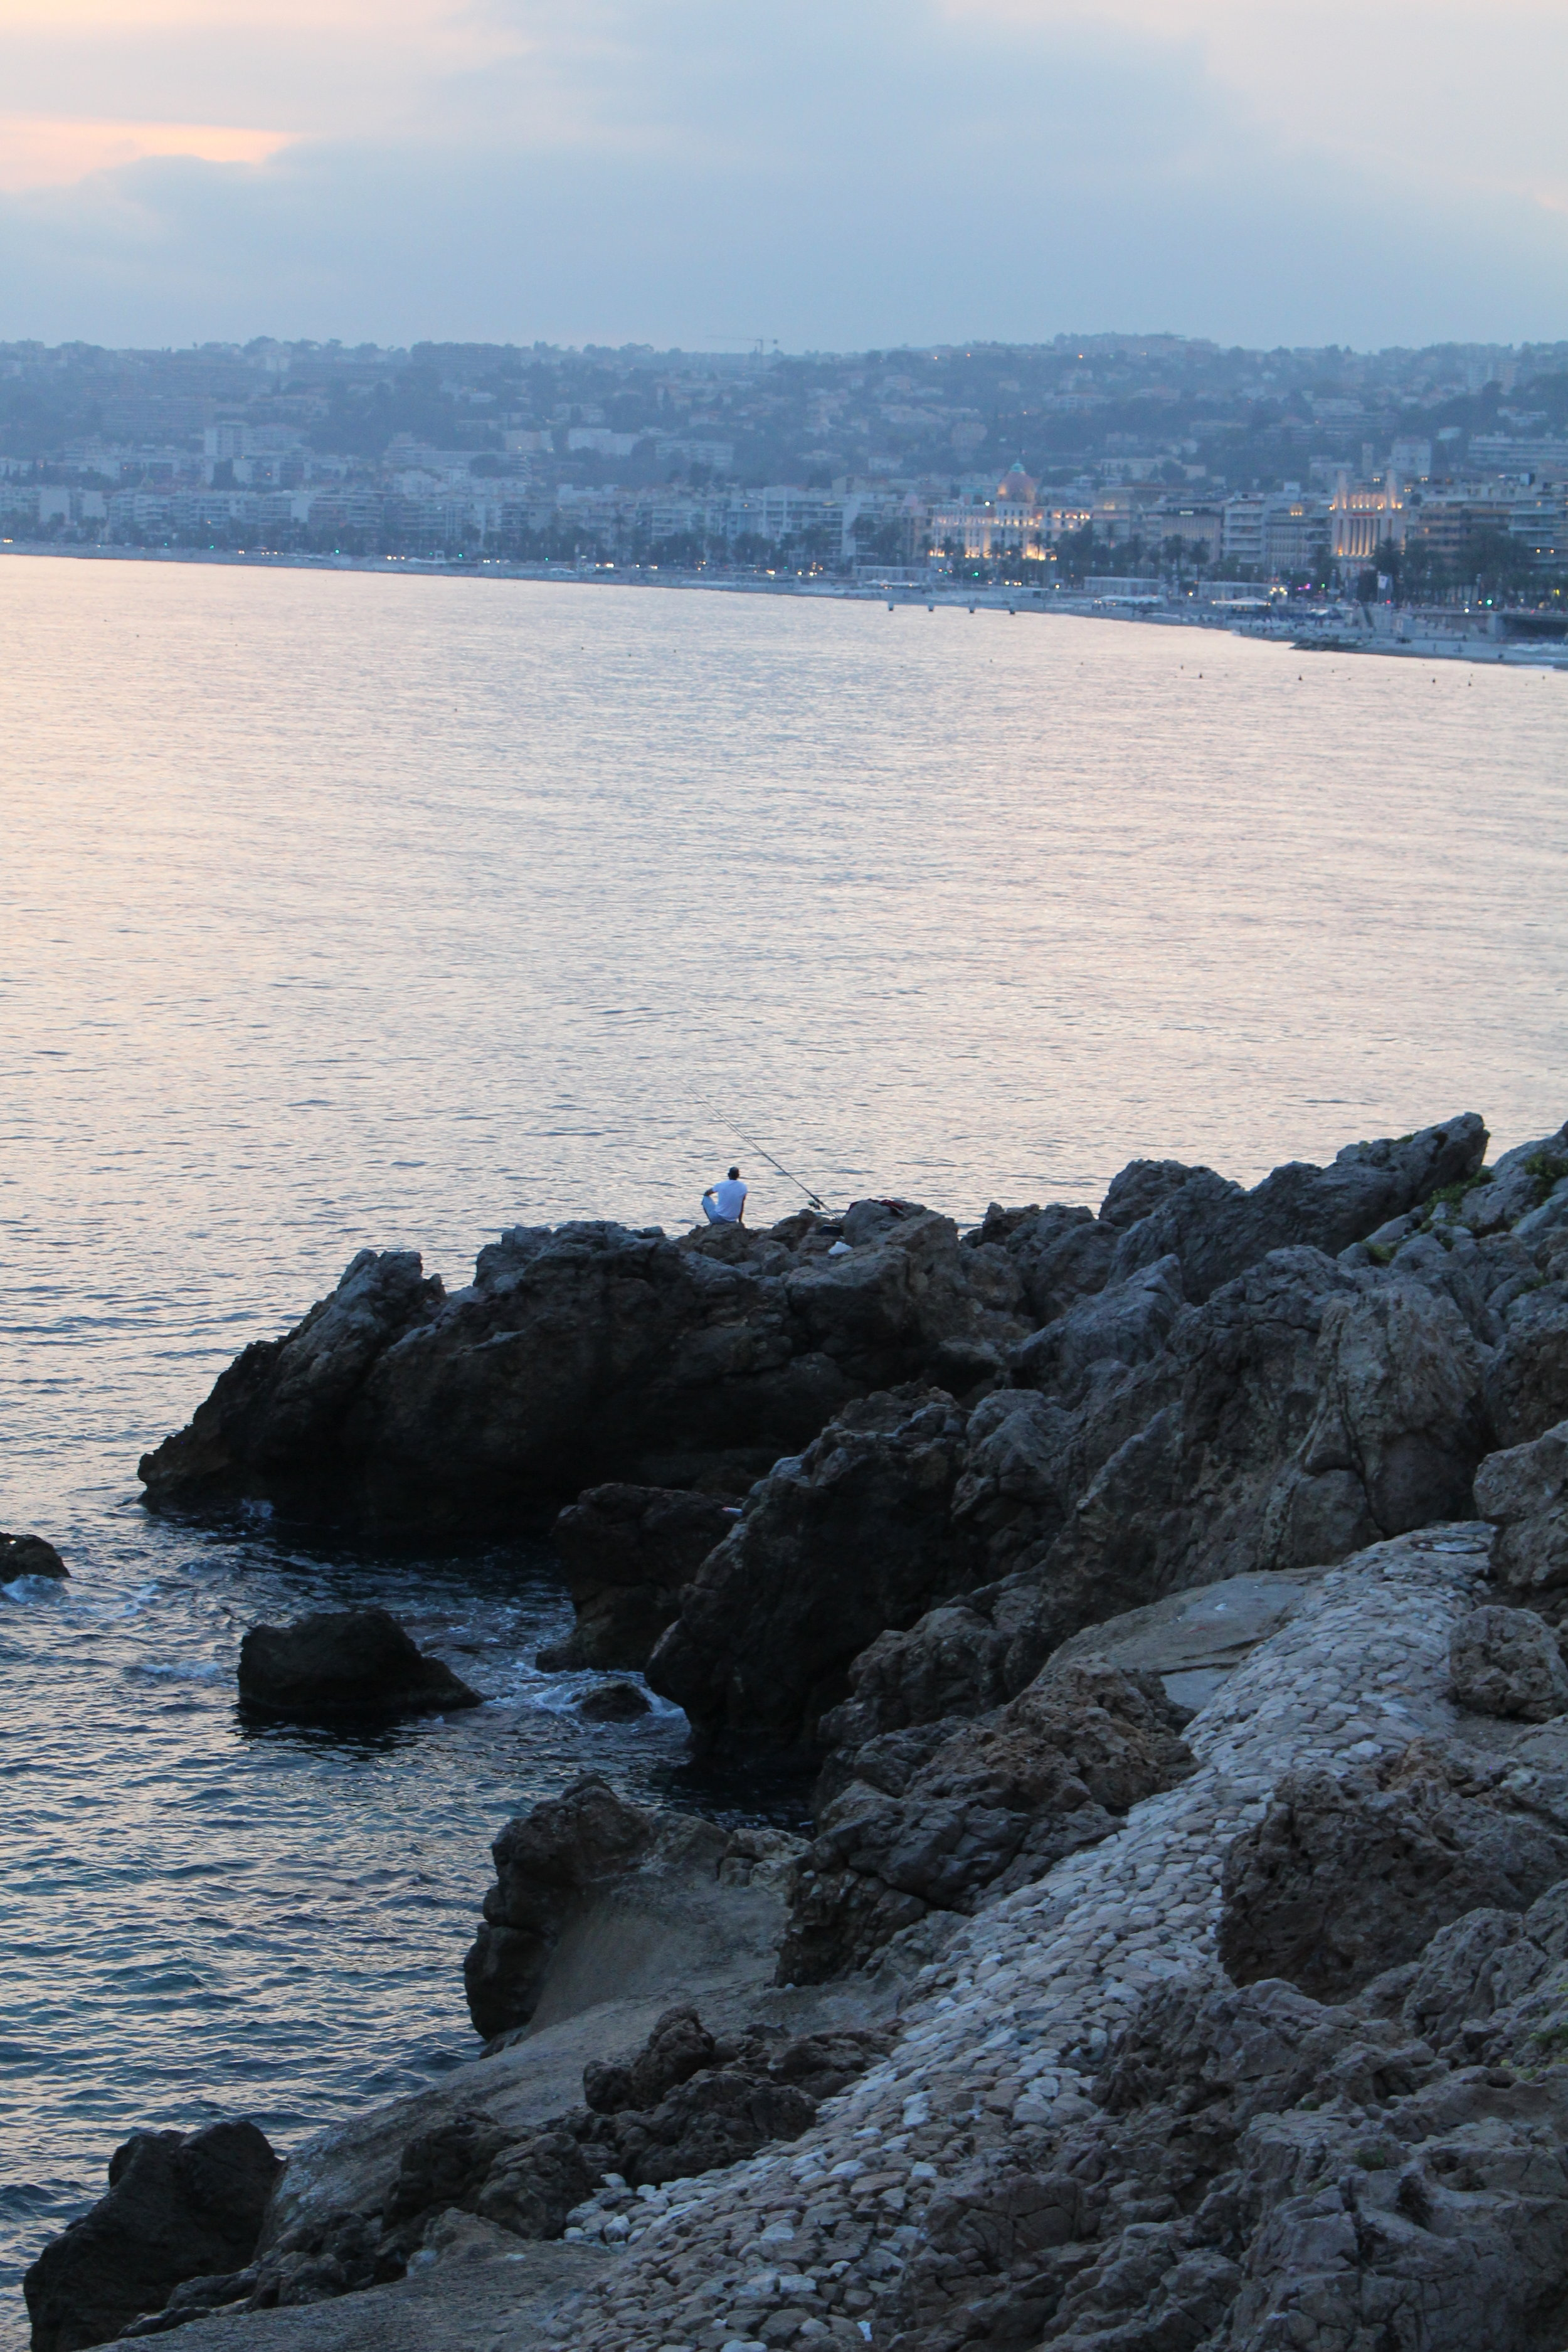 Fishing on the rocks, Nice France